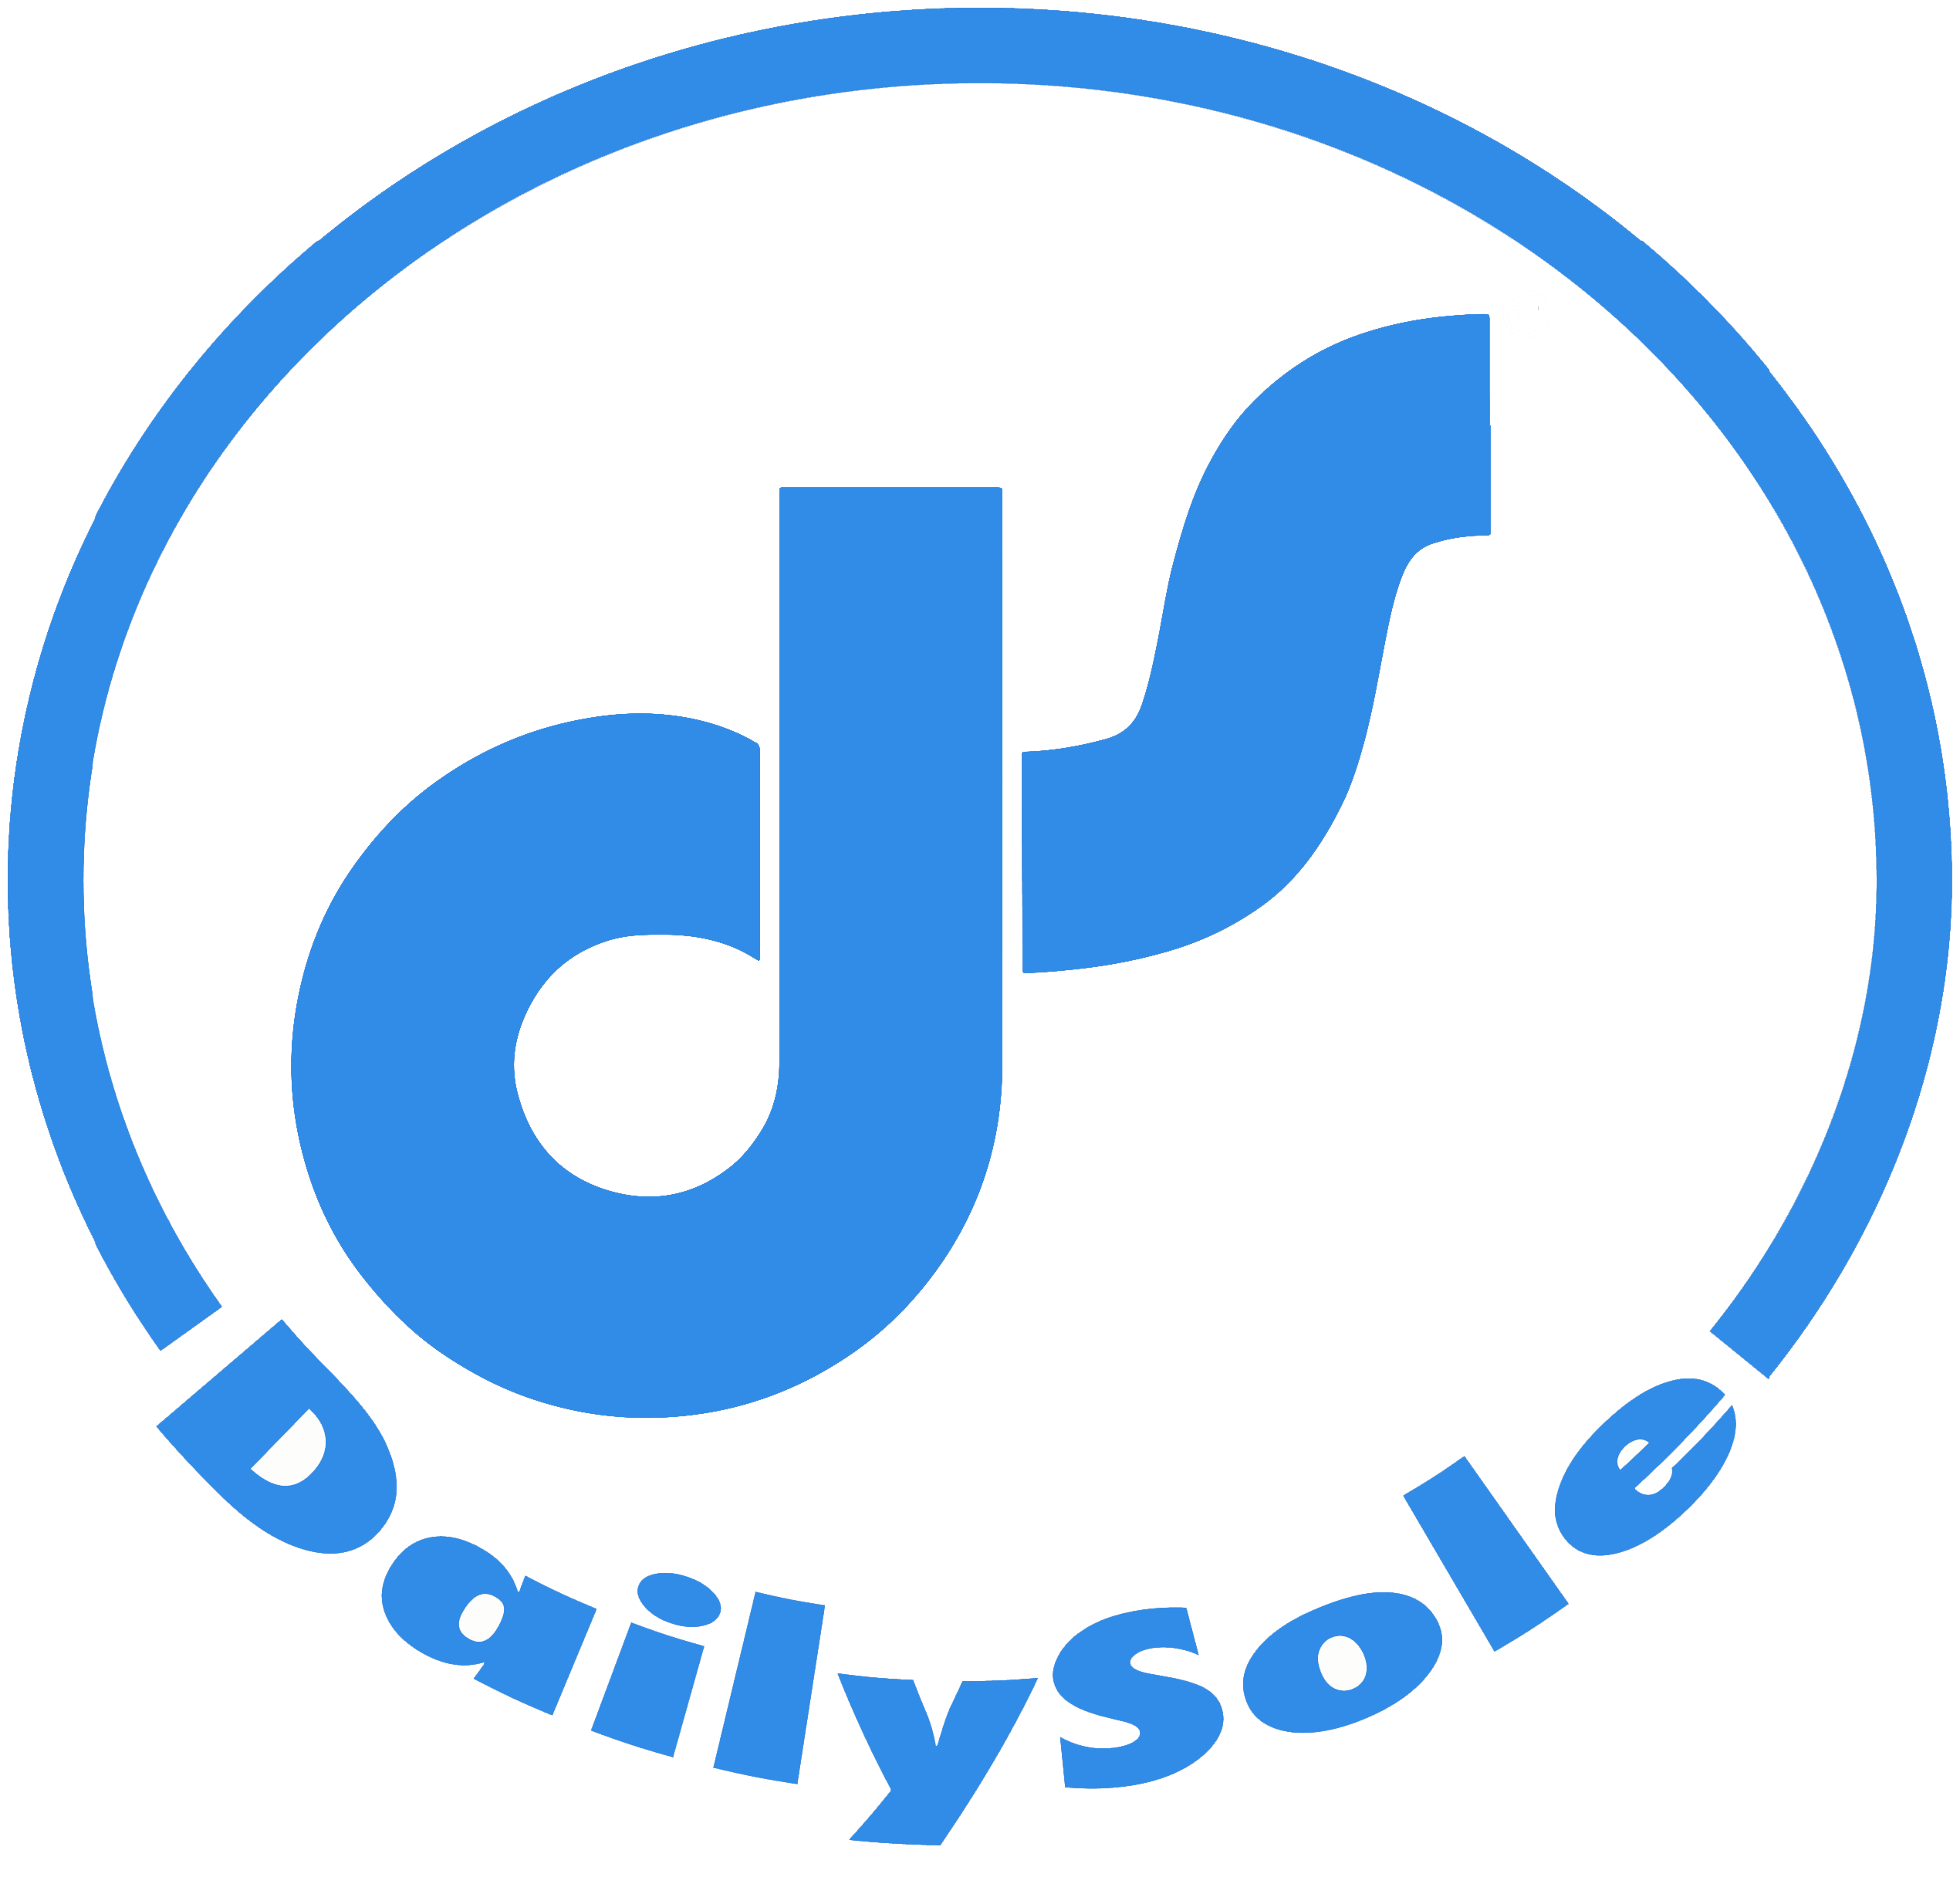 DailySole